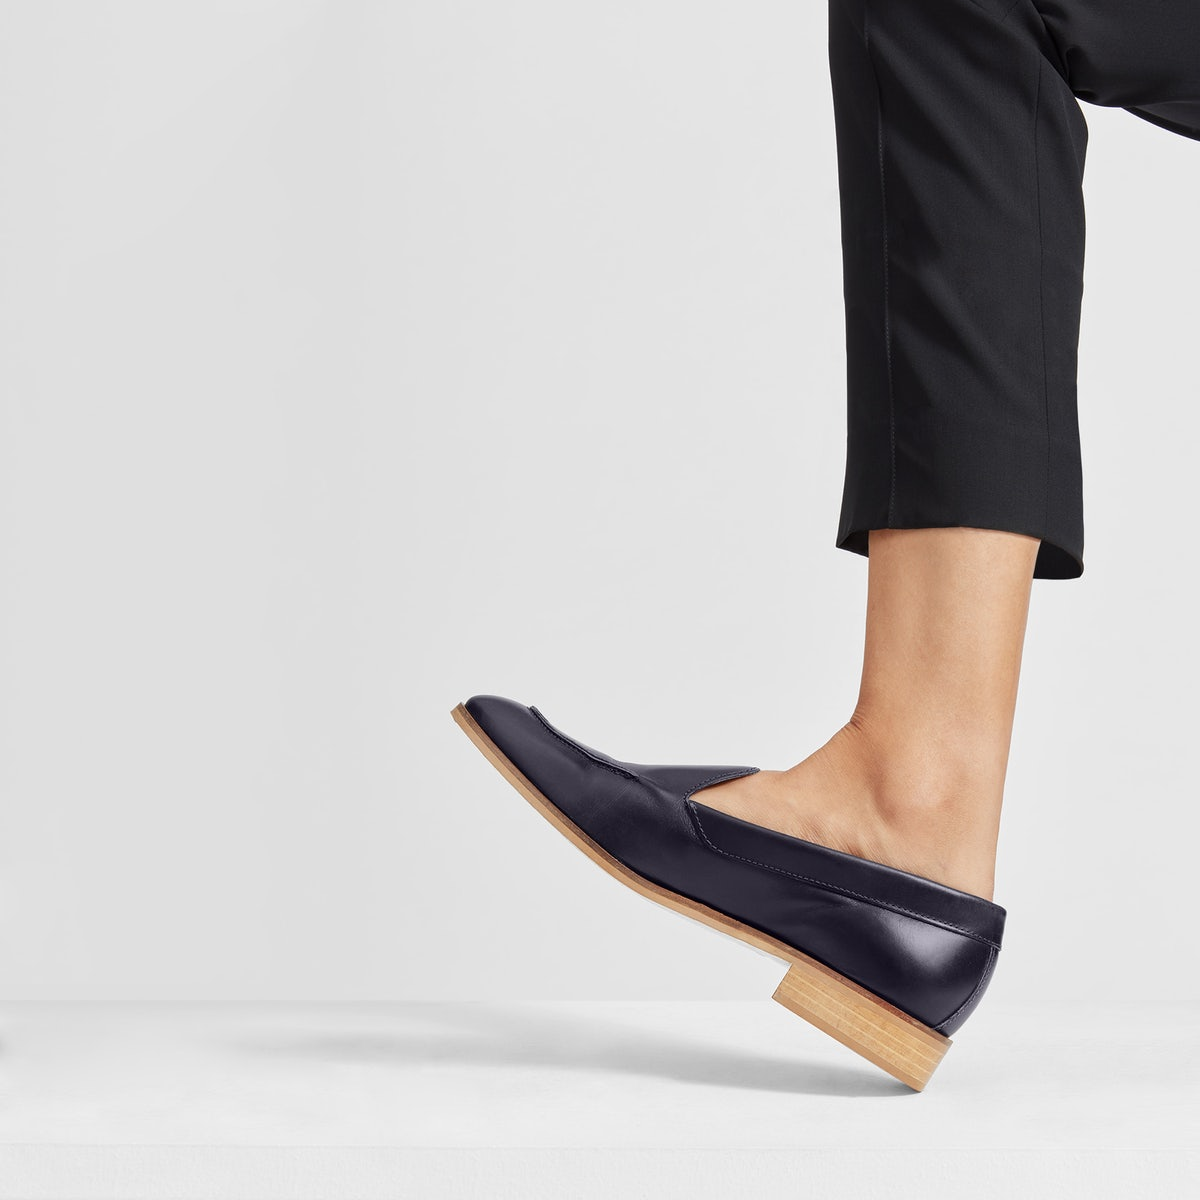 everlane loafer